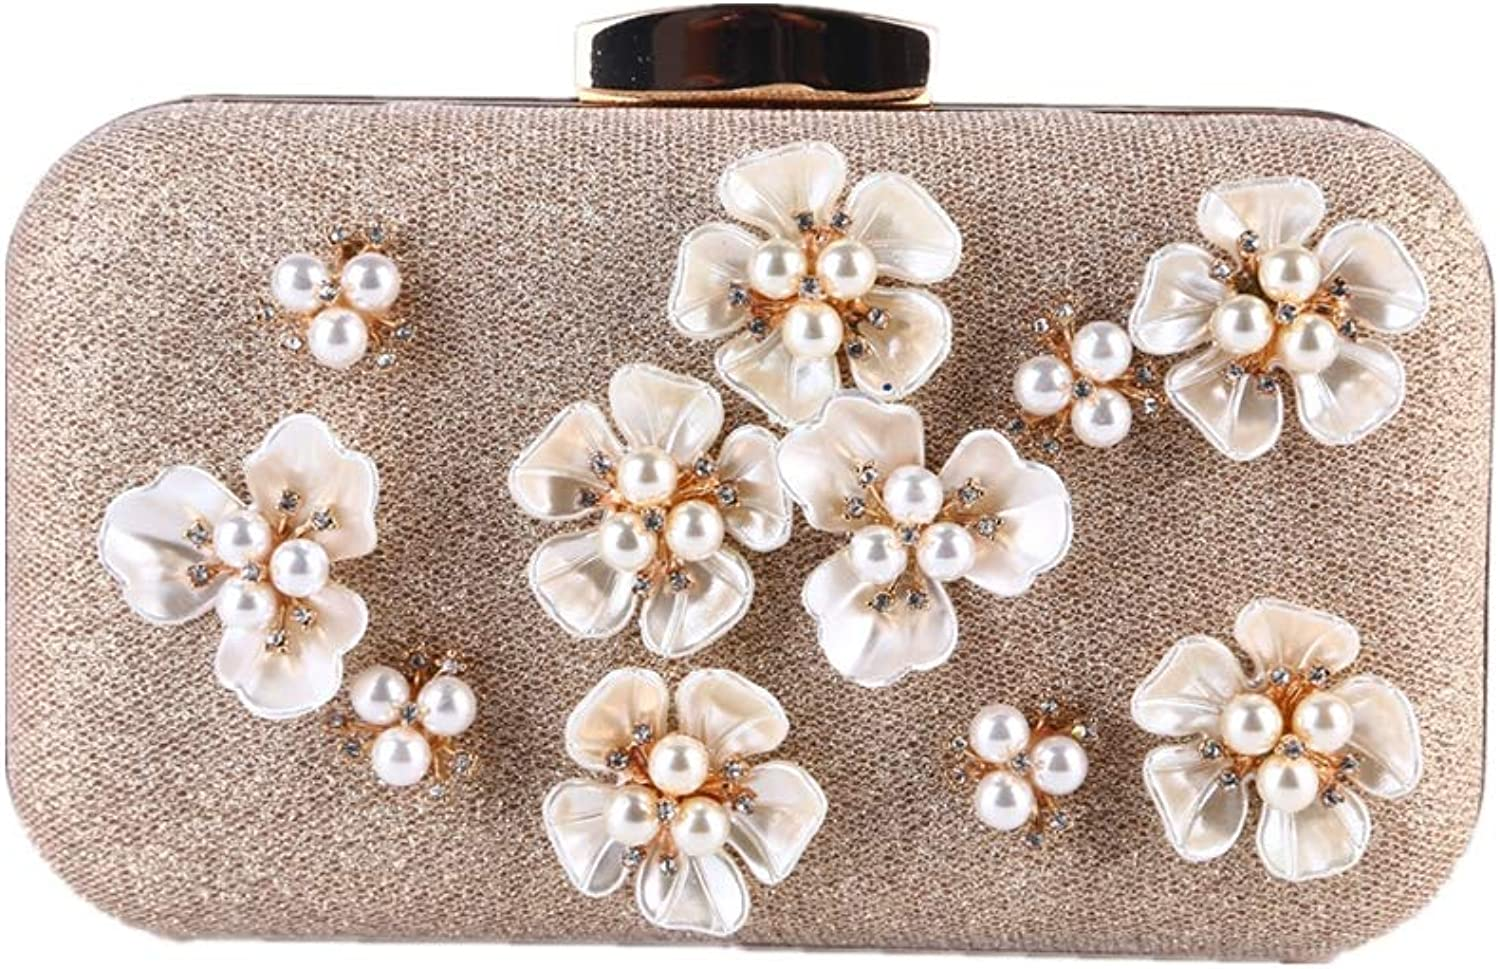 204d92796a6a8 Hand Star Ladies Pearl Pearl Pearl Flower Evening Bag damen es Clutch Bags  Clutches Purses Shoulder Cross Body Pack Hochzeits-Handtaschen B07M8KLZNW  ...